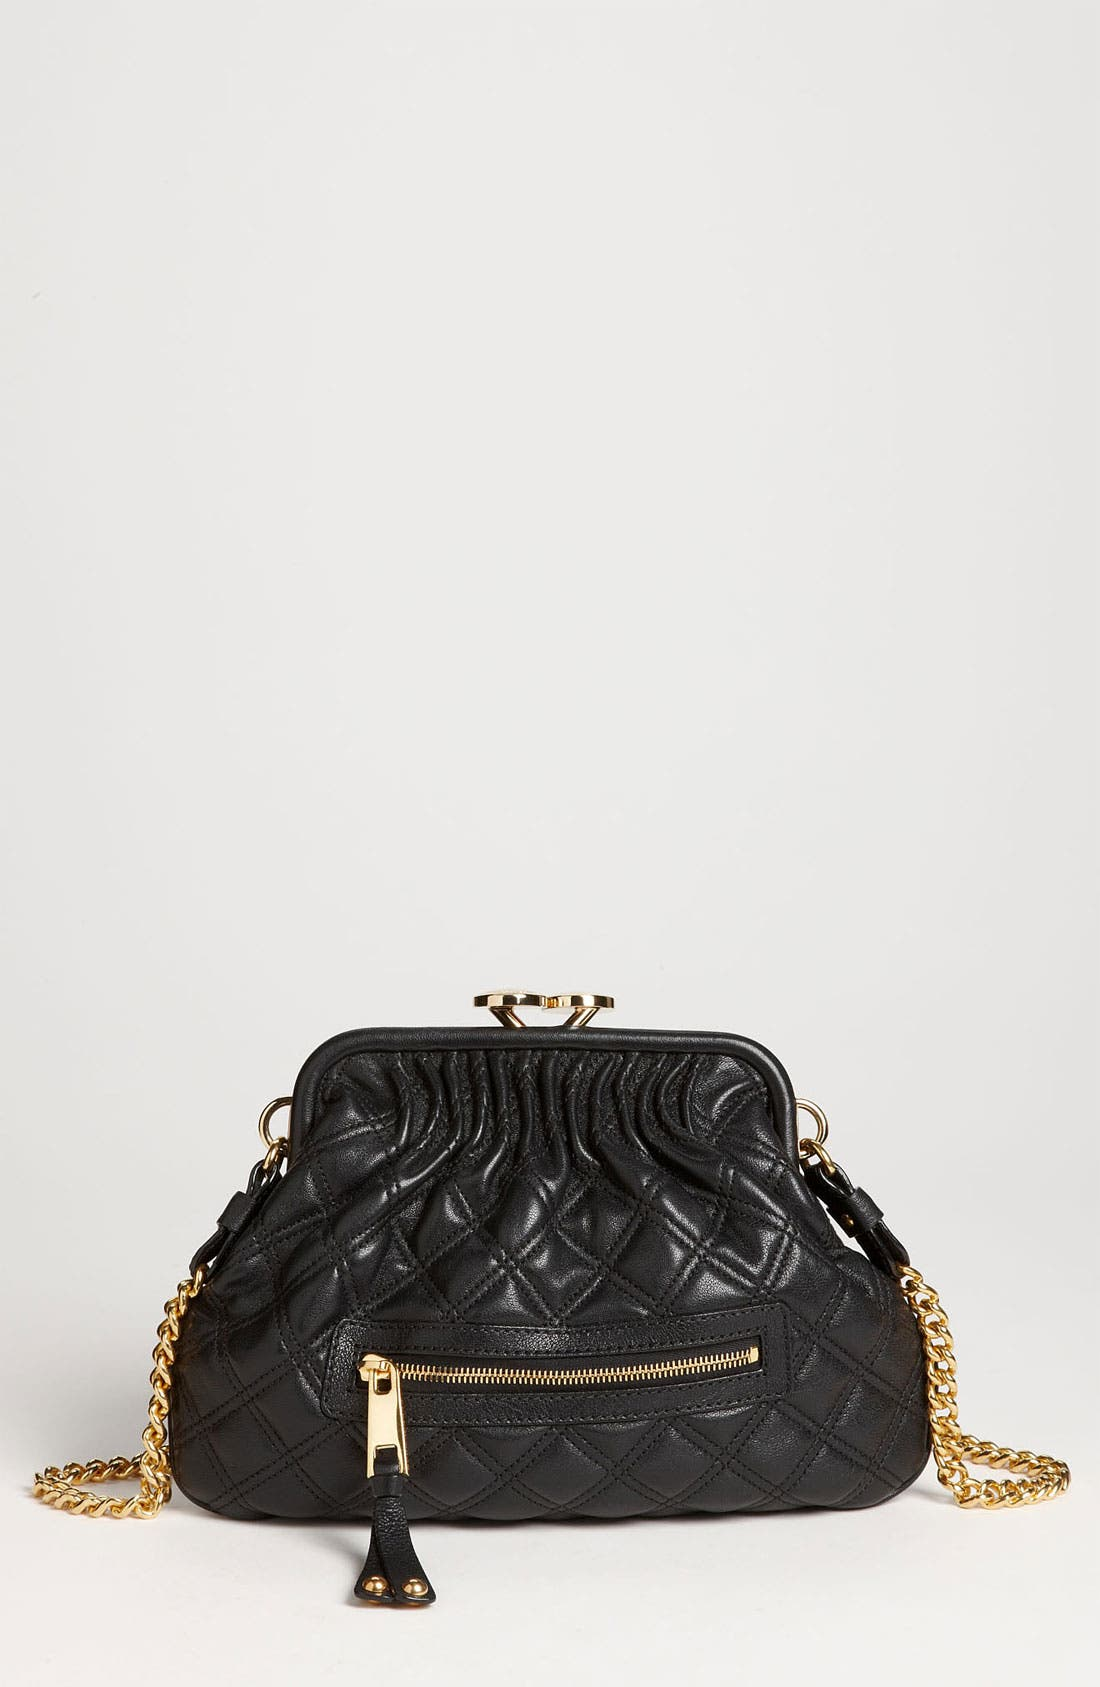 Main Image - MARC JACOBS 'Little Stam' Leather Crossbody Bag